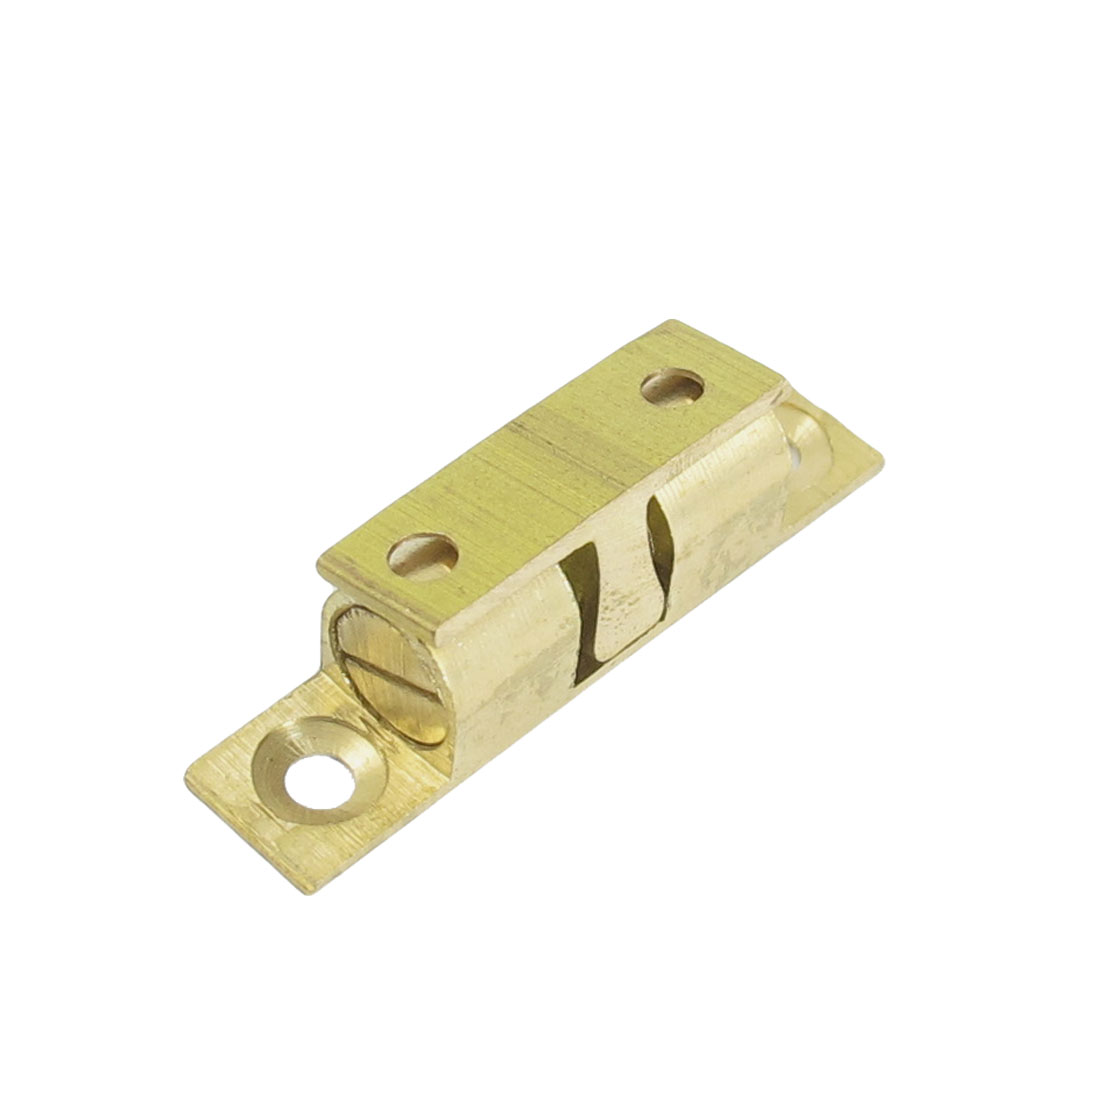 Home Door Latch Double Ball Catch 40mm Long Brass Tone